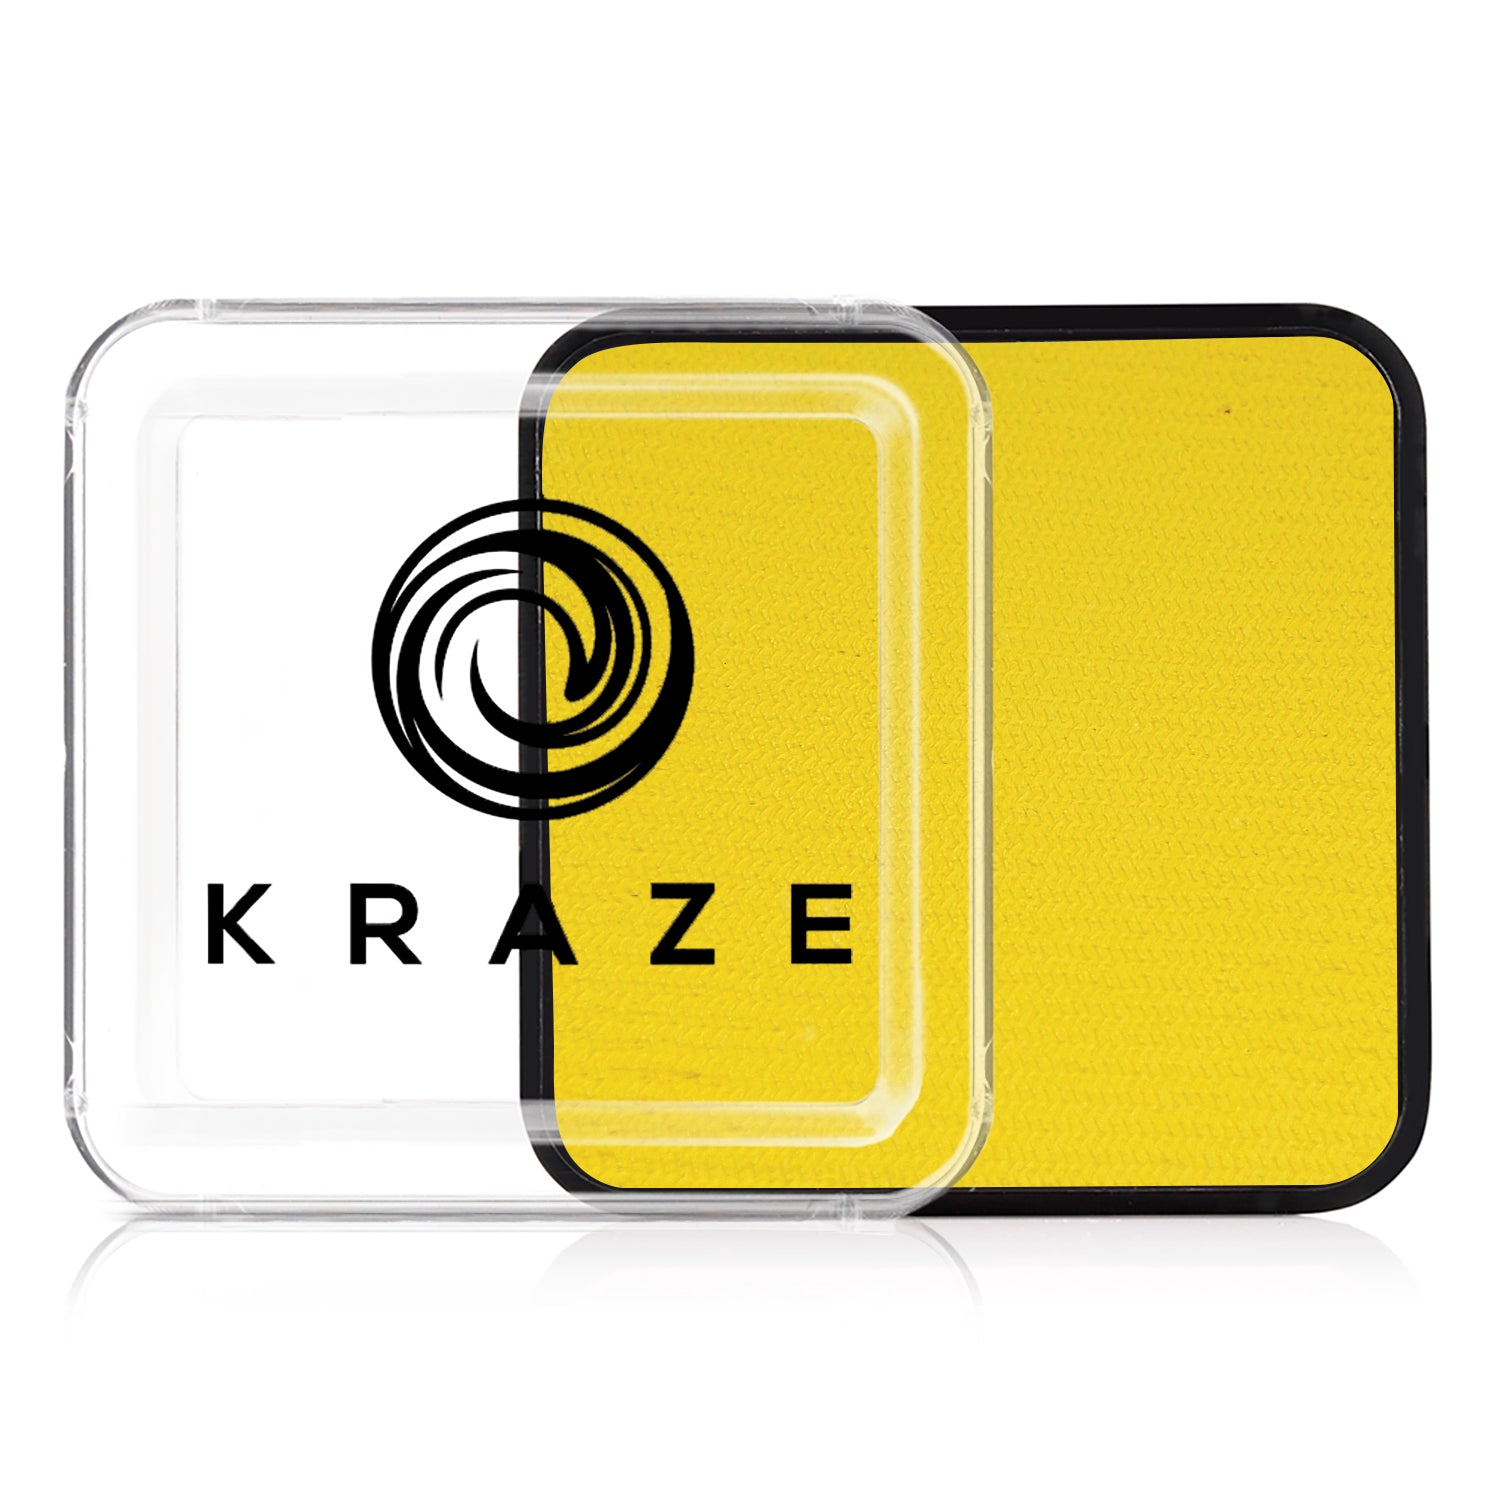 Kraze Light Yellow Square - 25 gm